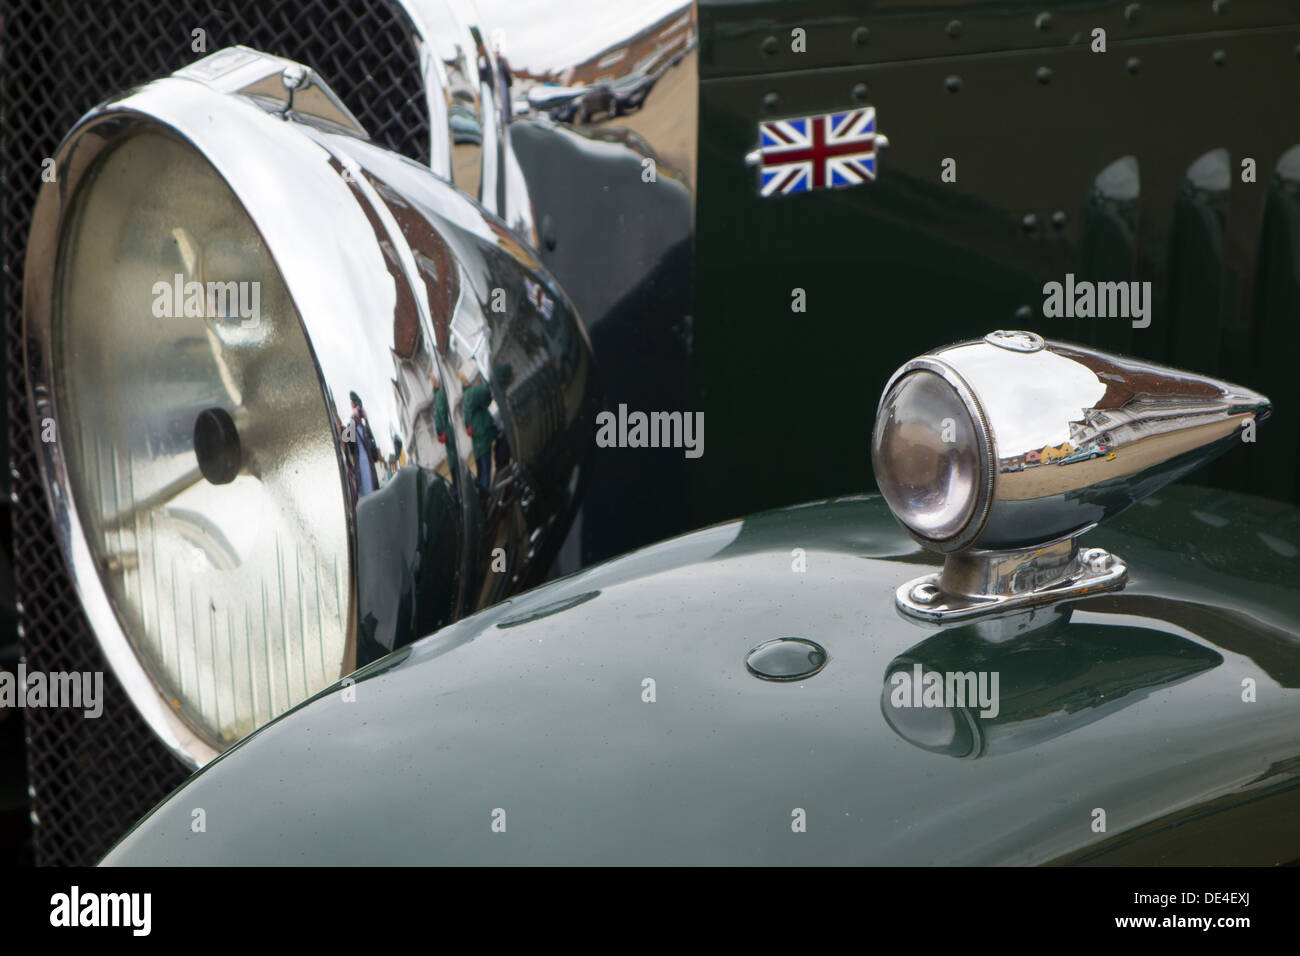 The chrome headlight (headlamps) on the front of a classic British touring car. - Stock Image